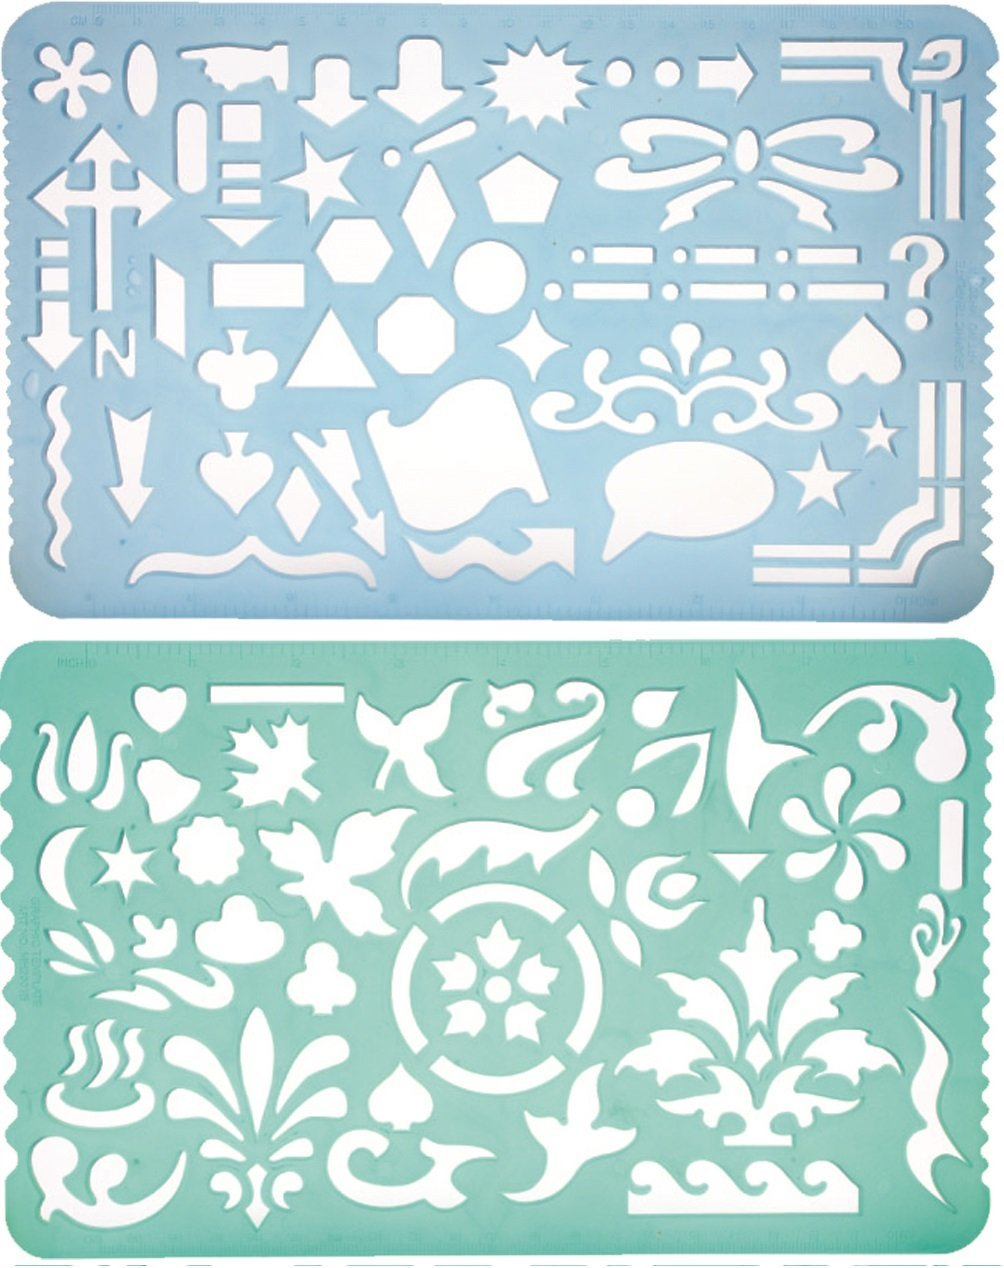 Set of 2 Artistic Drafting Art Templates of Various Shapes and Designs for Artists and Art & Craft Projects Yosogo Writing Instrument 2001AB